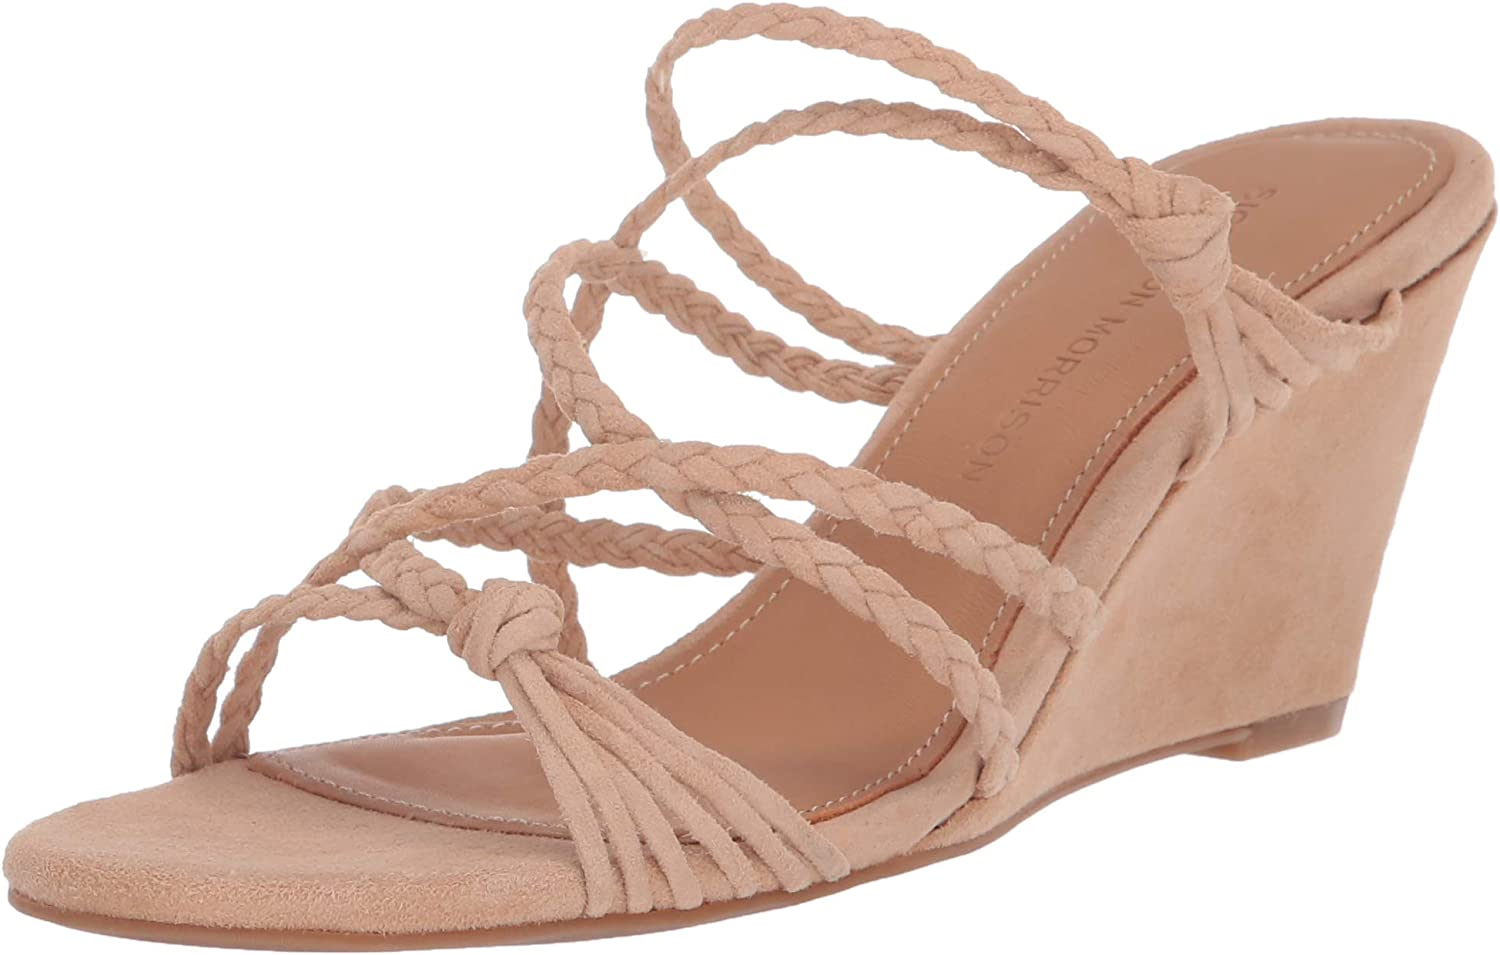 Sigerson Morrison Women's Maddie Sandal Columbus Mall Free shipping anywhere in the nation